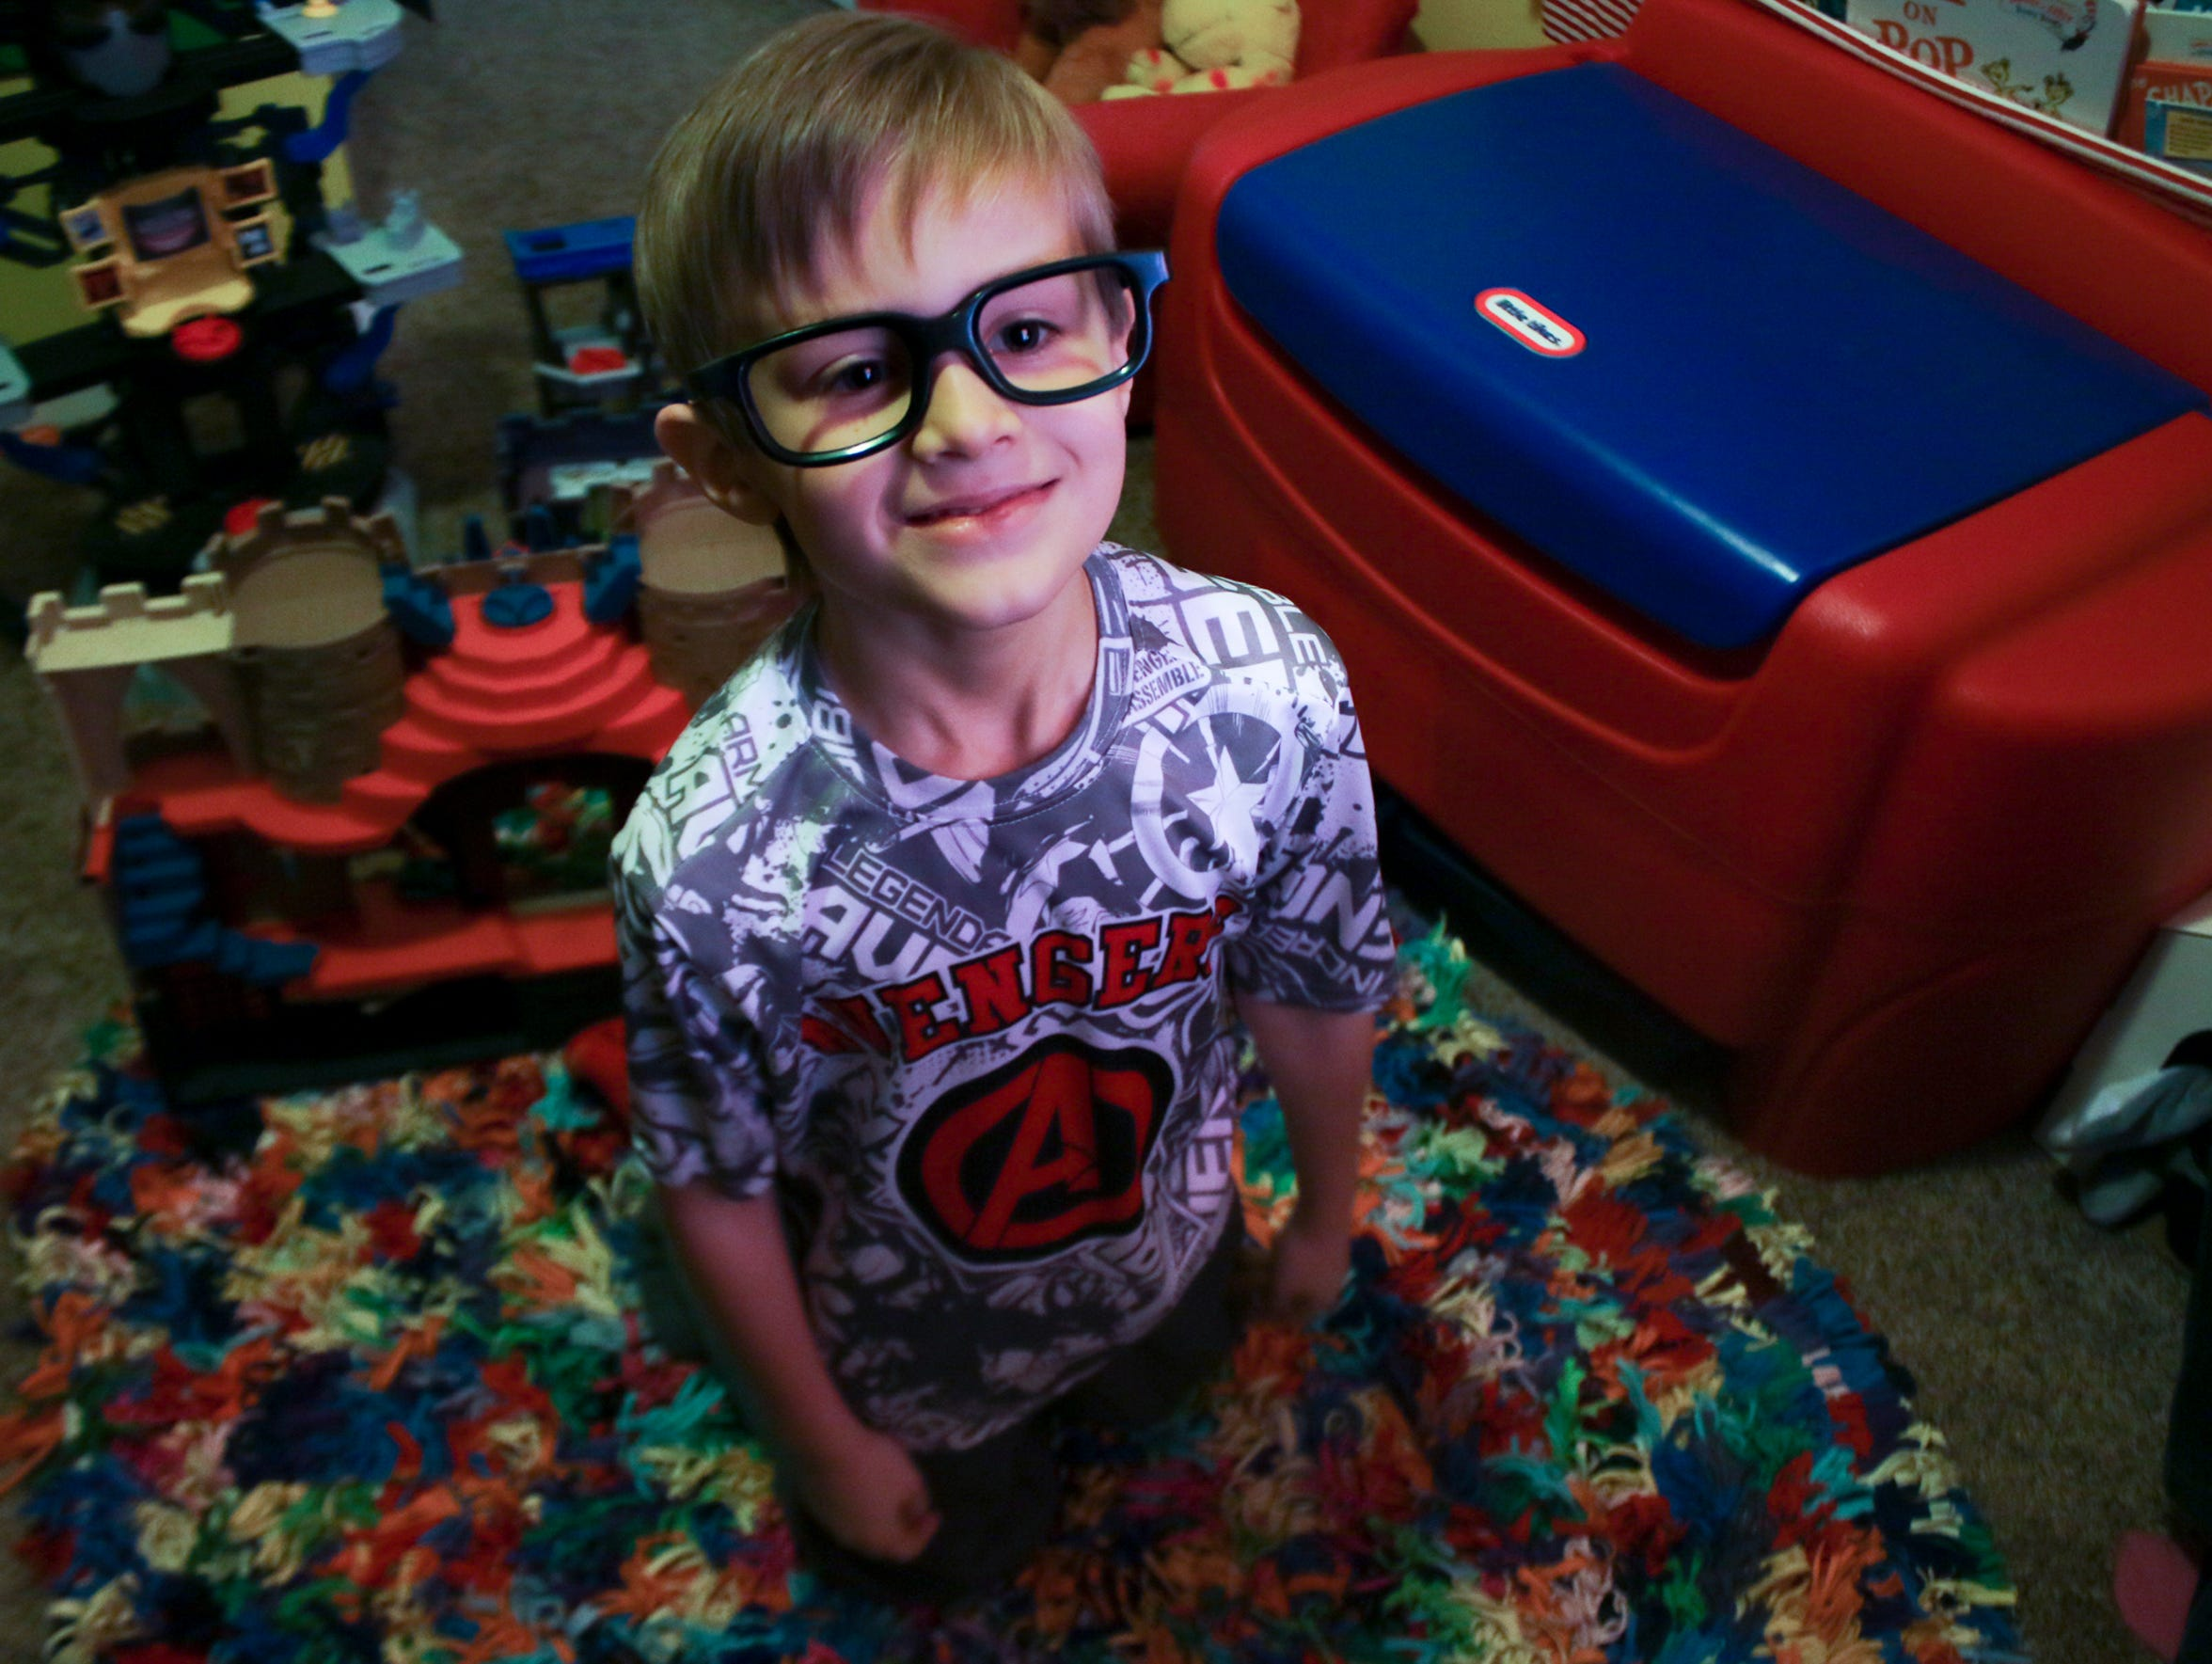 Noah Coffman, 6, poses in his room surrounded by his